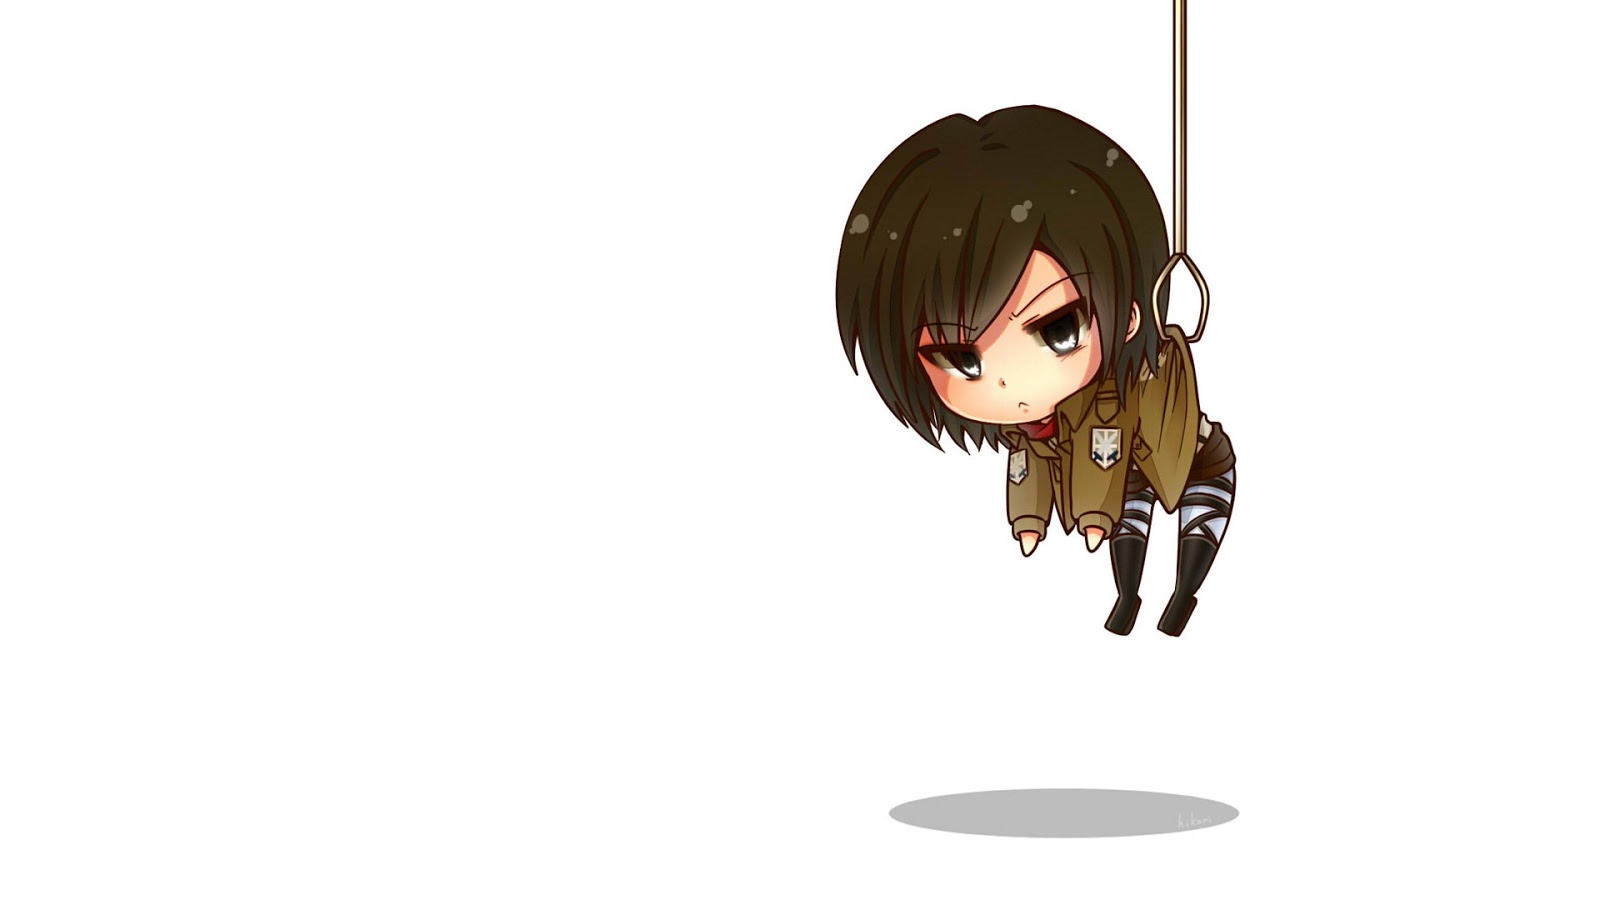 Chibi Cute Attack on Titan Shingeki no Kyojin Girl Anime HD Wallpaper 1600x900